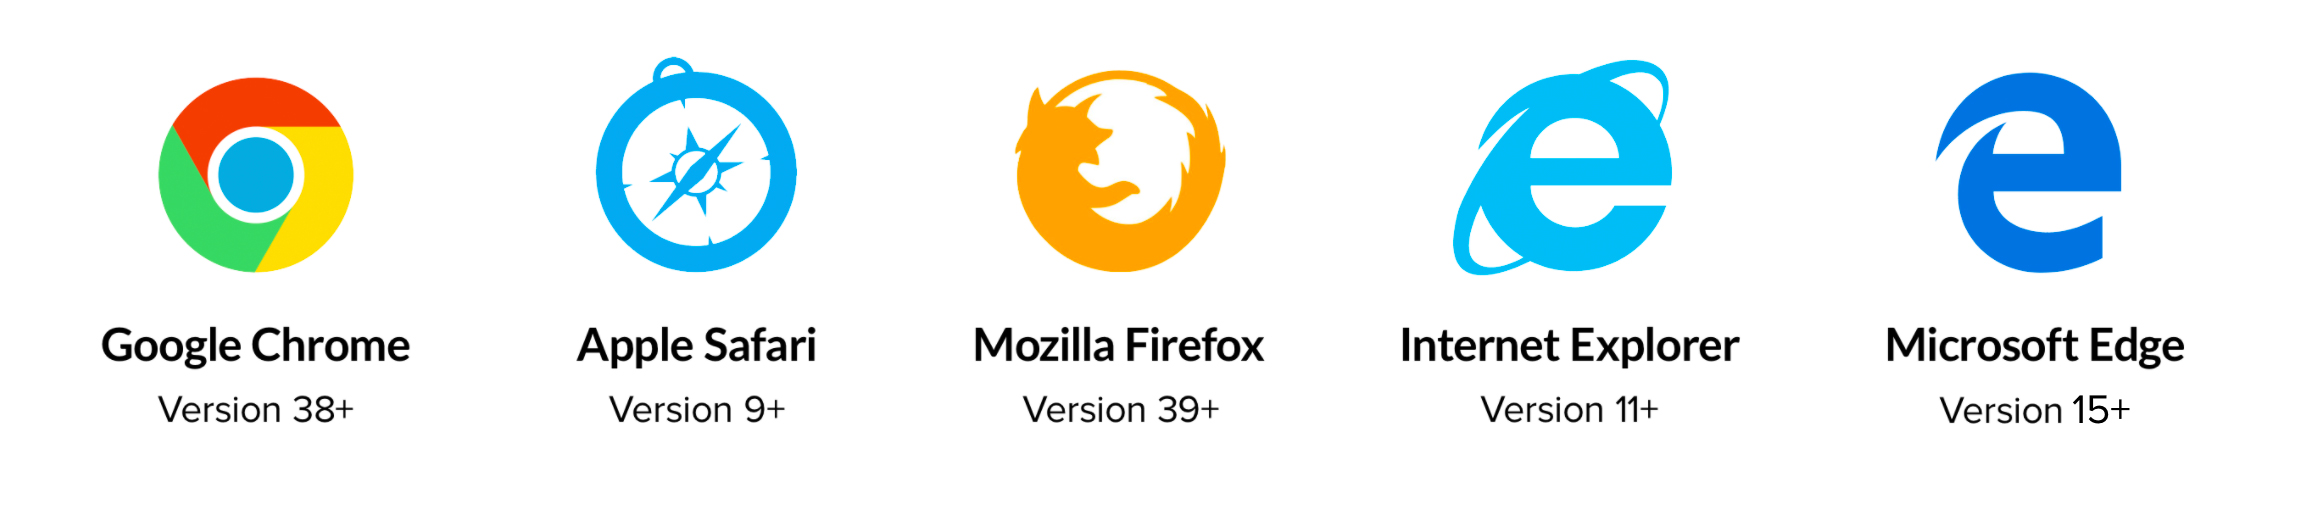 _icons-for_browsers_new.jpg